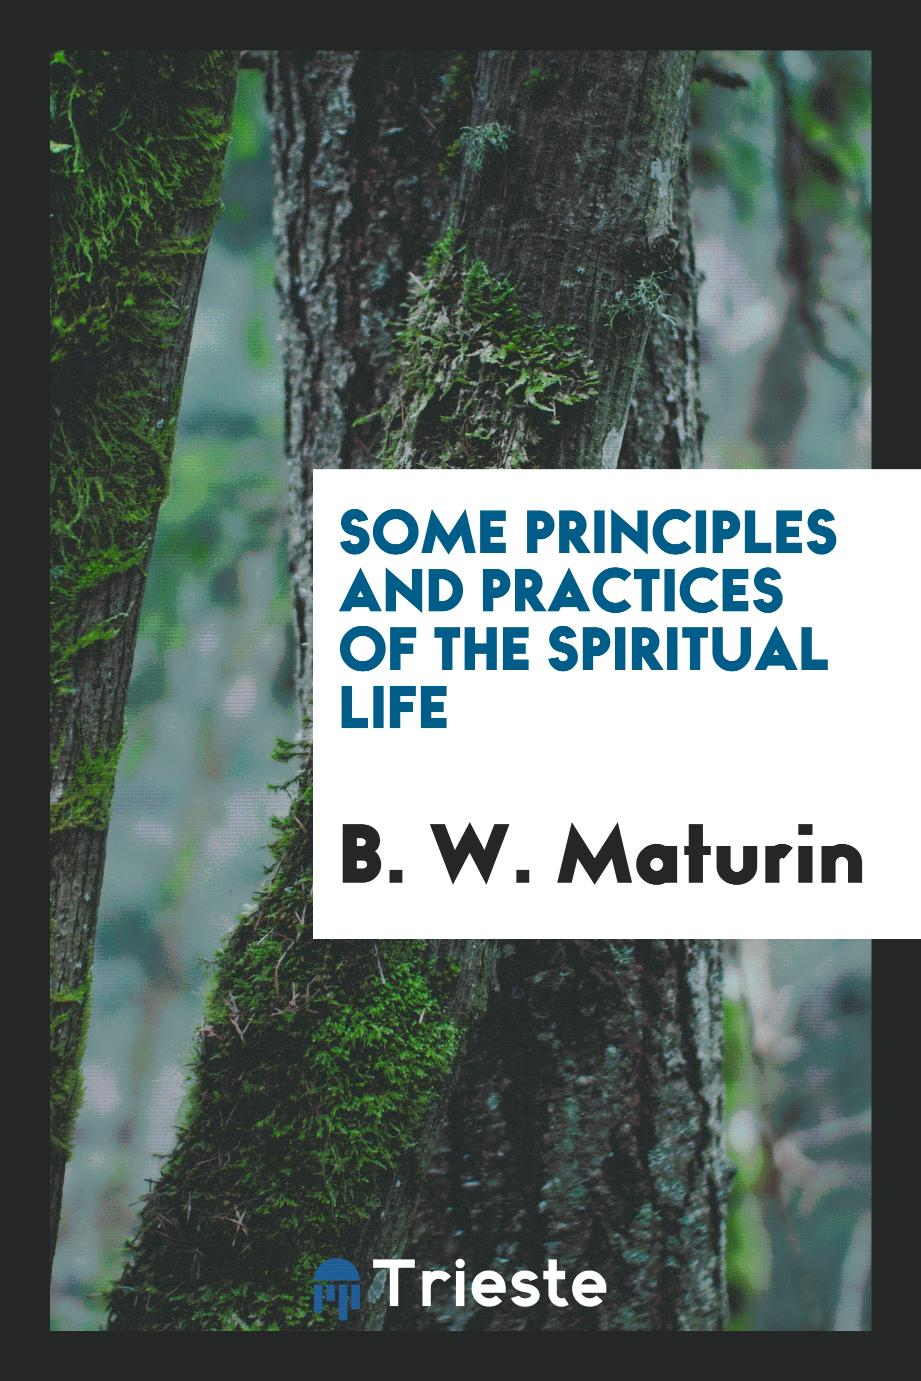 B. W. Maturin - Some principles and practices of the spiritual life